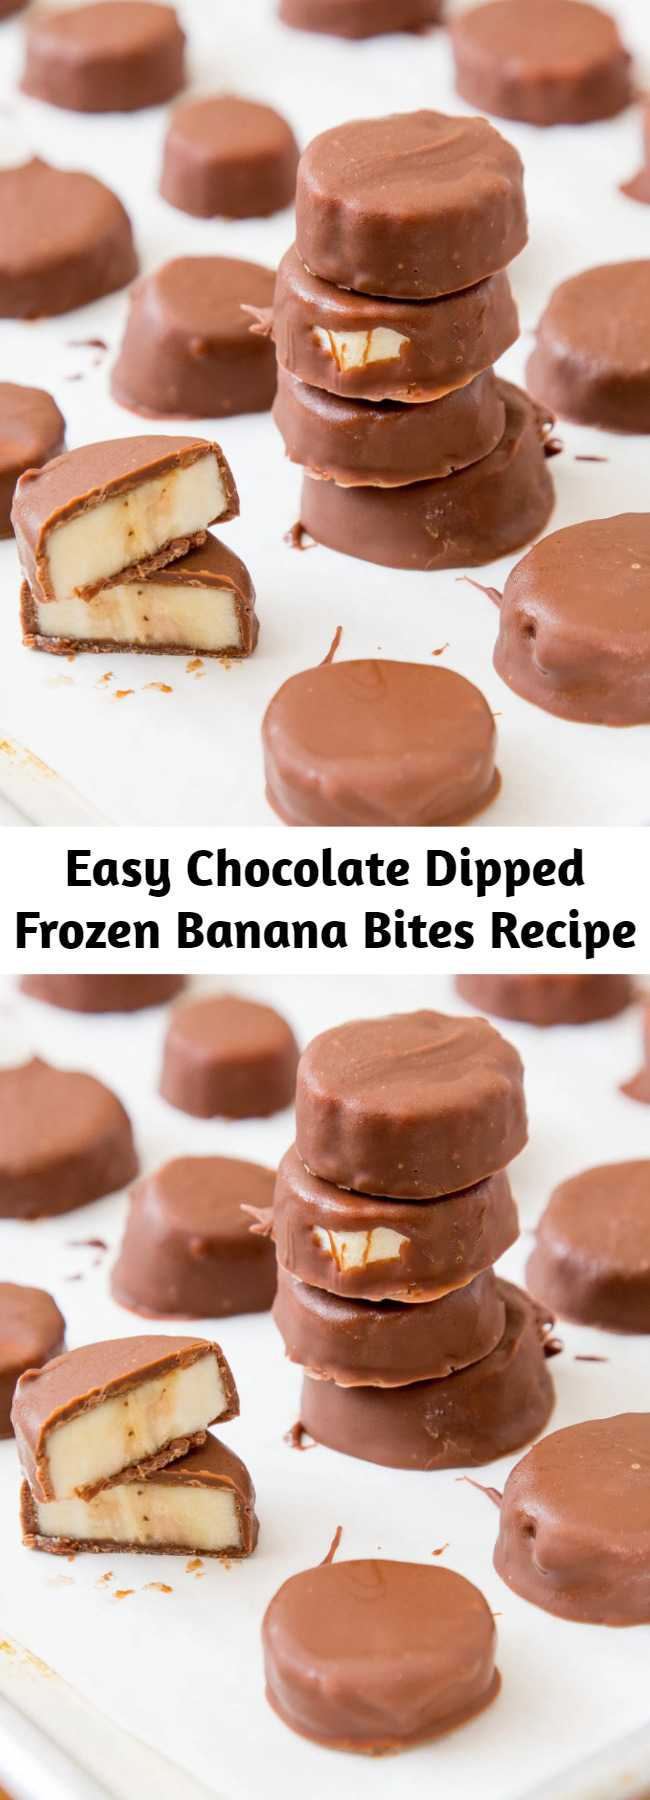 Easy Chocolate Dipped Frozen Banana Bites Recipe - These Chocolate Dipped Frozen Banana Bites are perfect little snacks with just 3 ingredients! So easy and tasty!